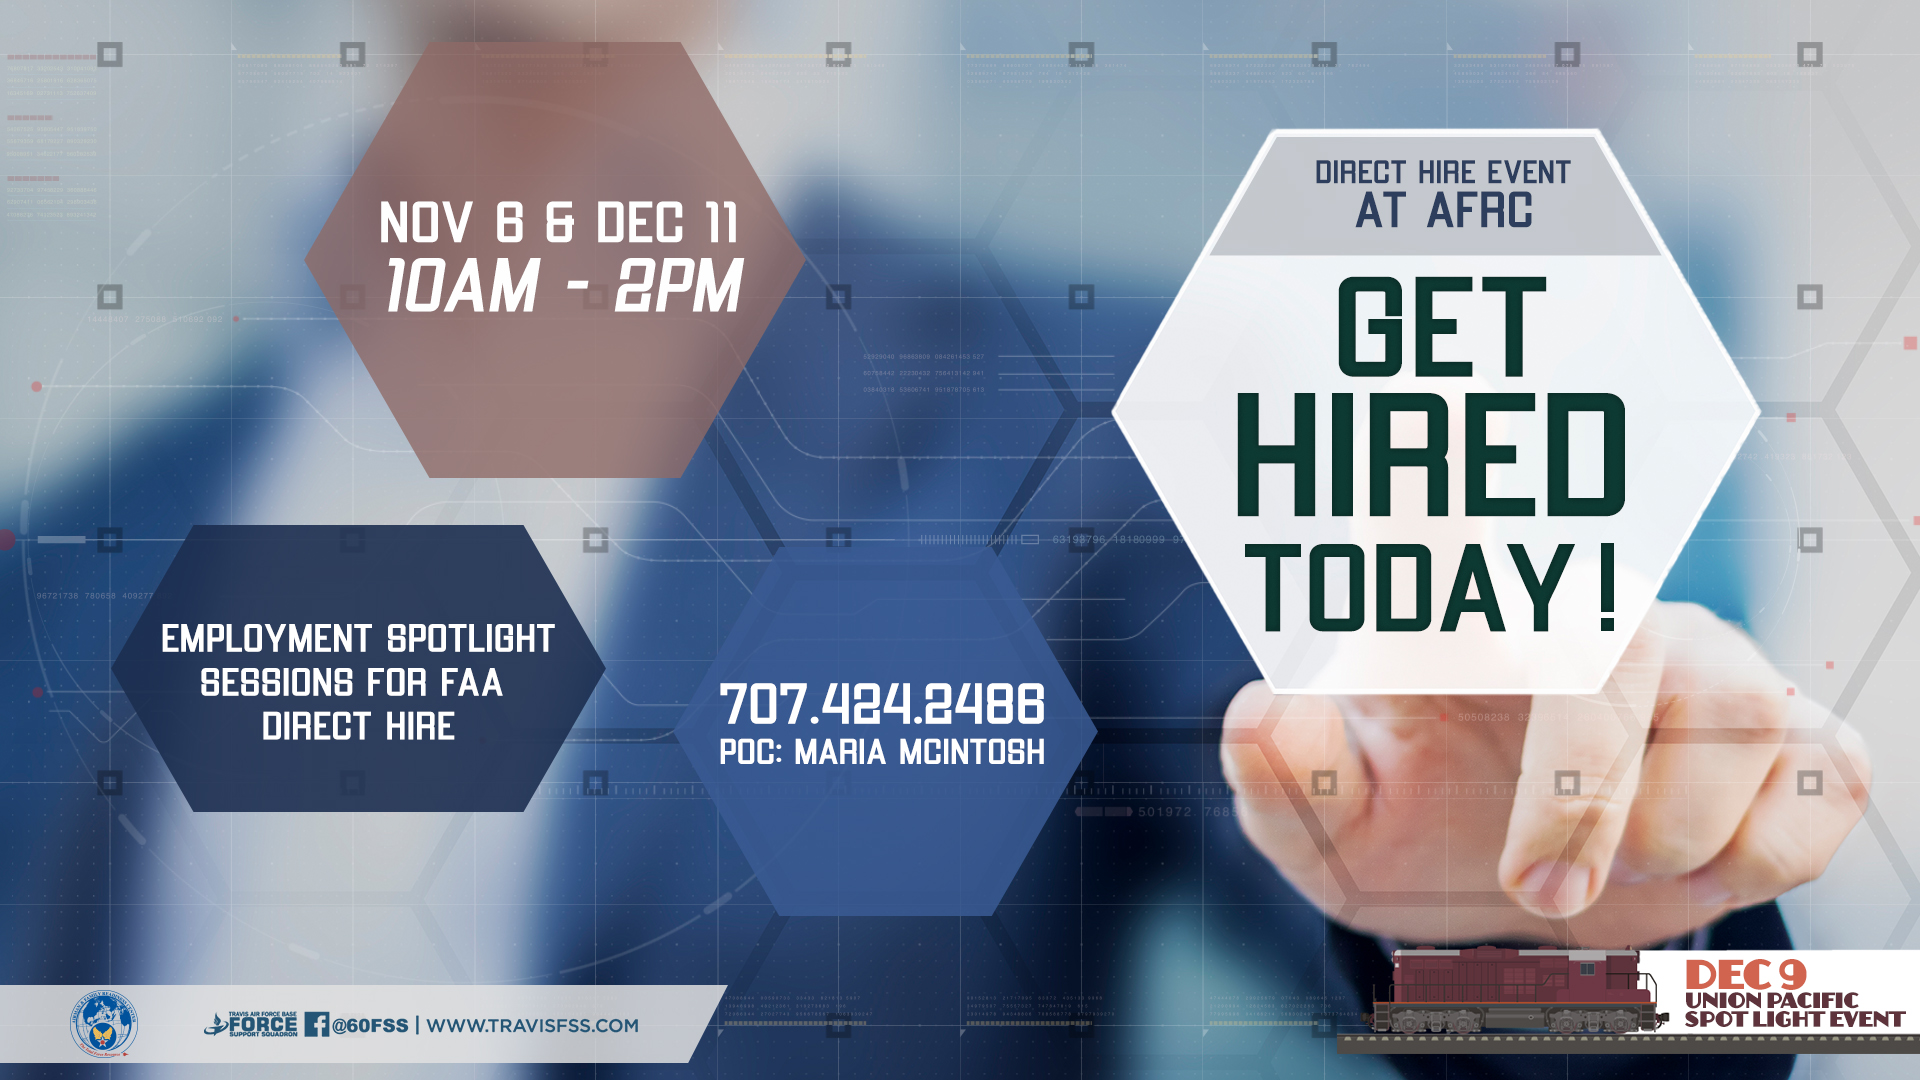 Get Hired At Afrc